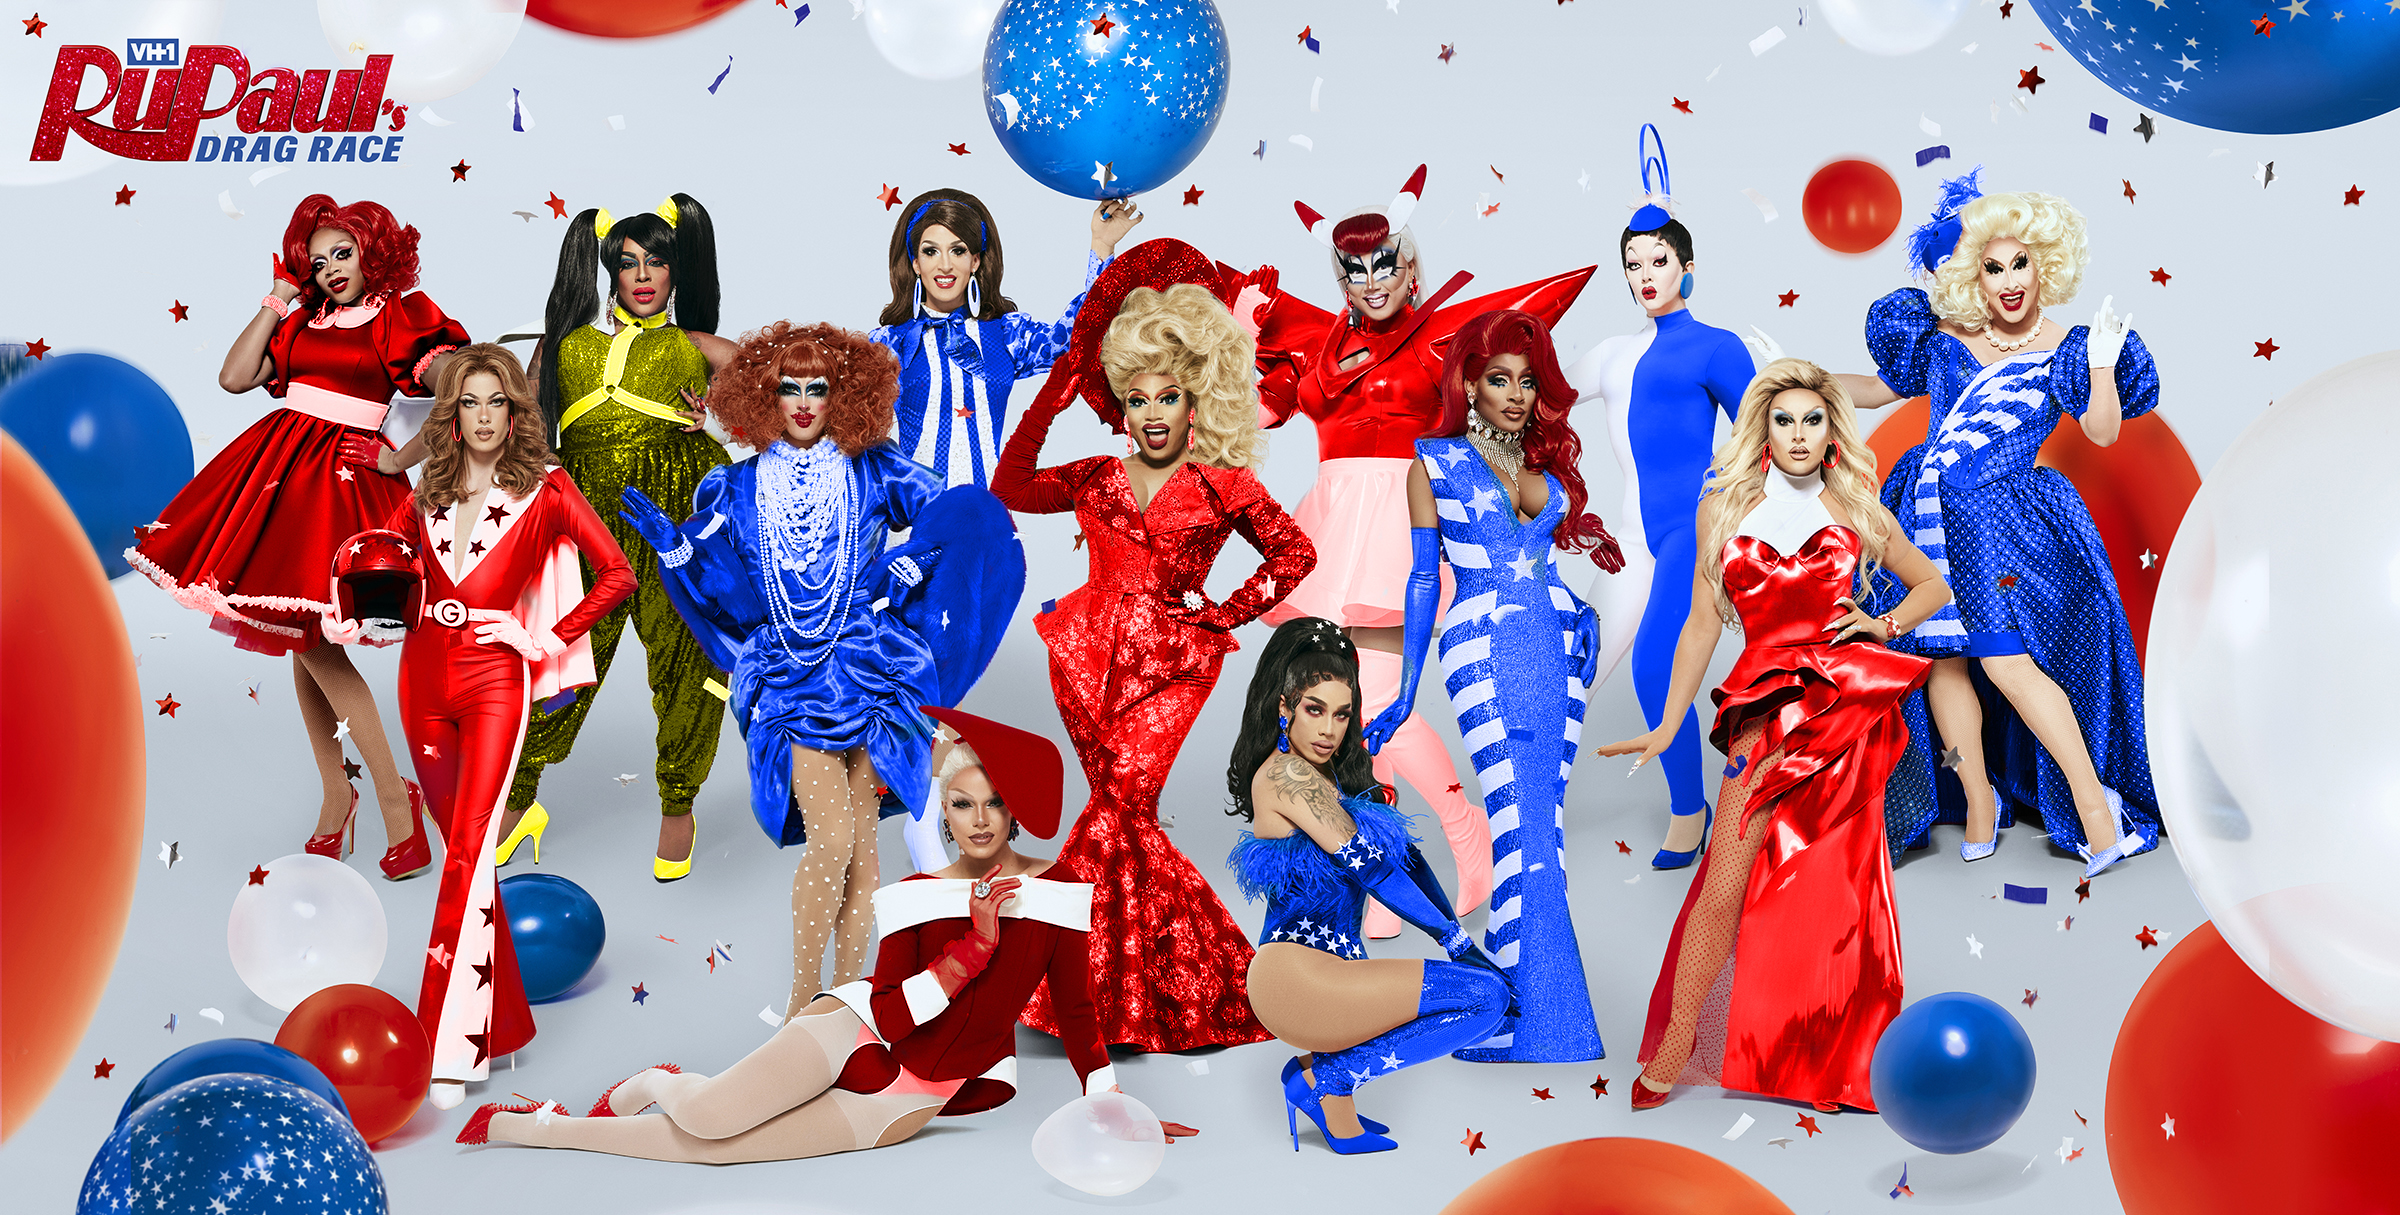 Drag Race Season 12 fantasy league